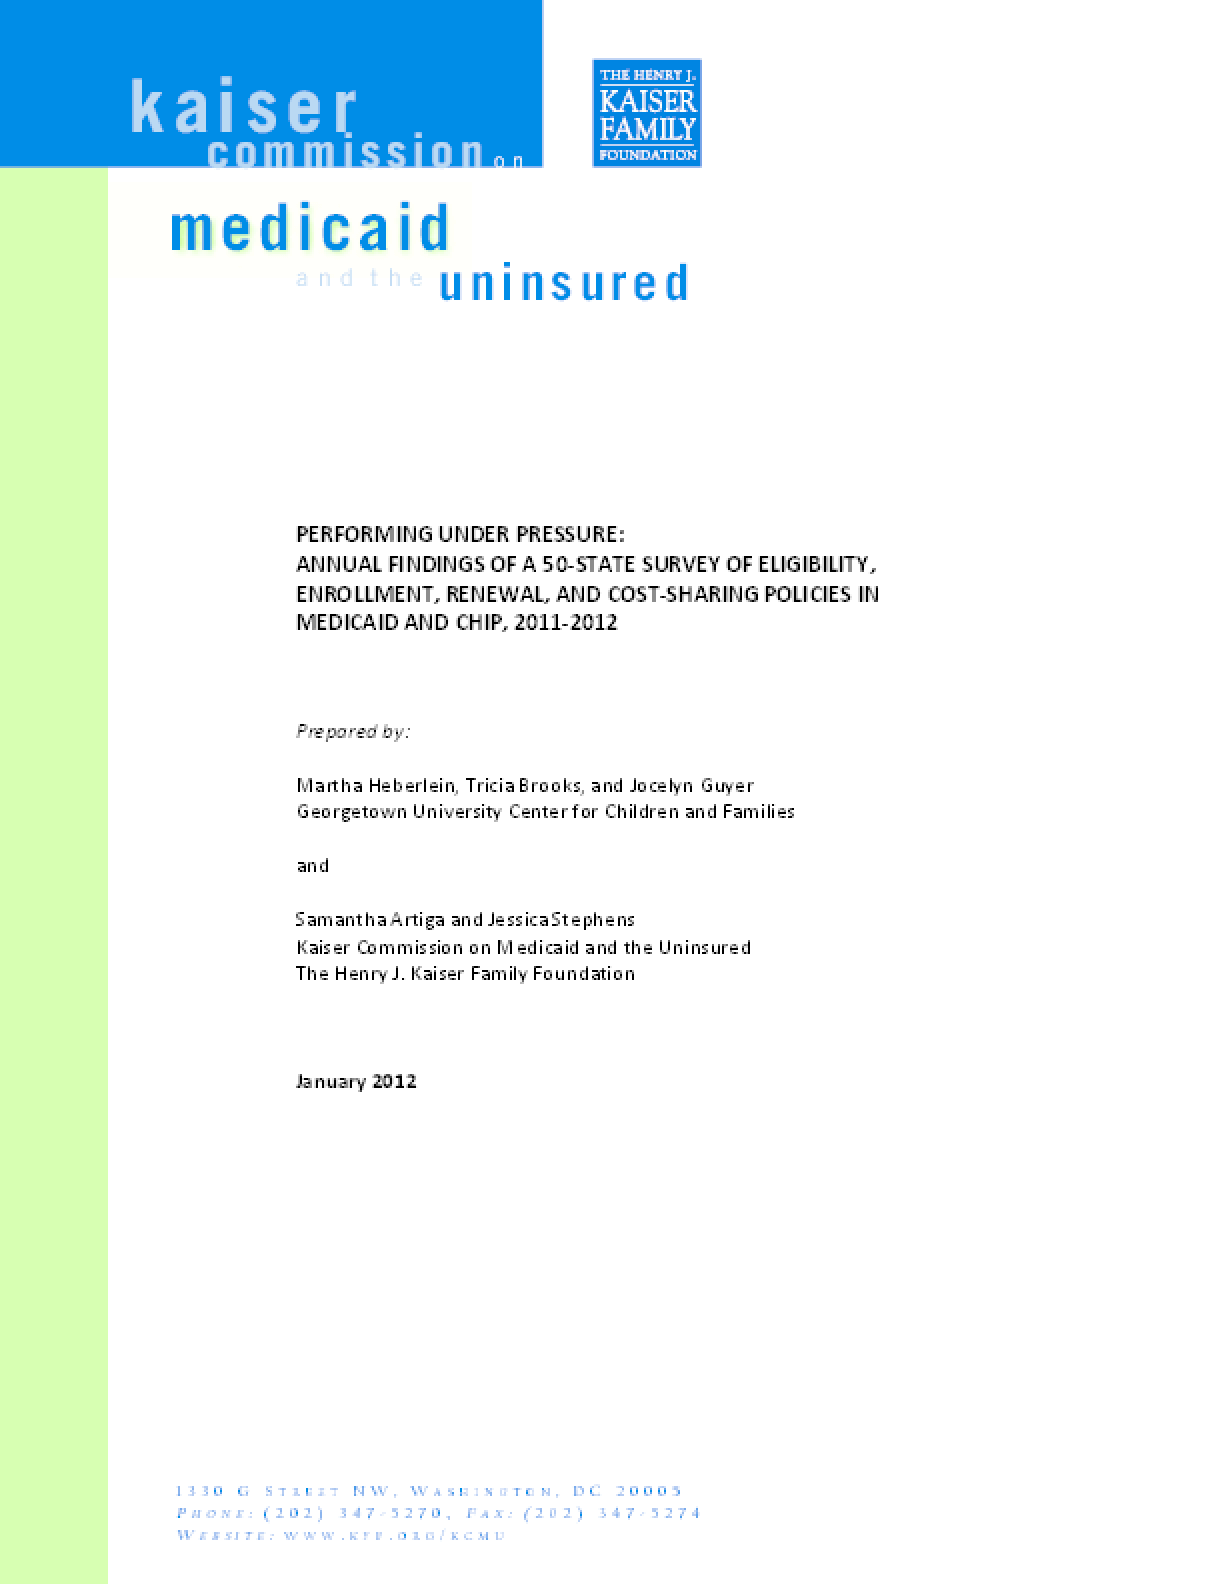 Performing Under Pressure: Annual Findings of a 50-State Survey of Eligibility, Enrollment, Renewal, and Cost-Sharing Policies in Medicaid and CHIP, 2011-2012